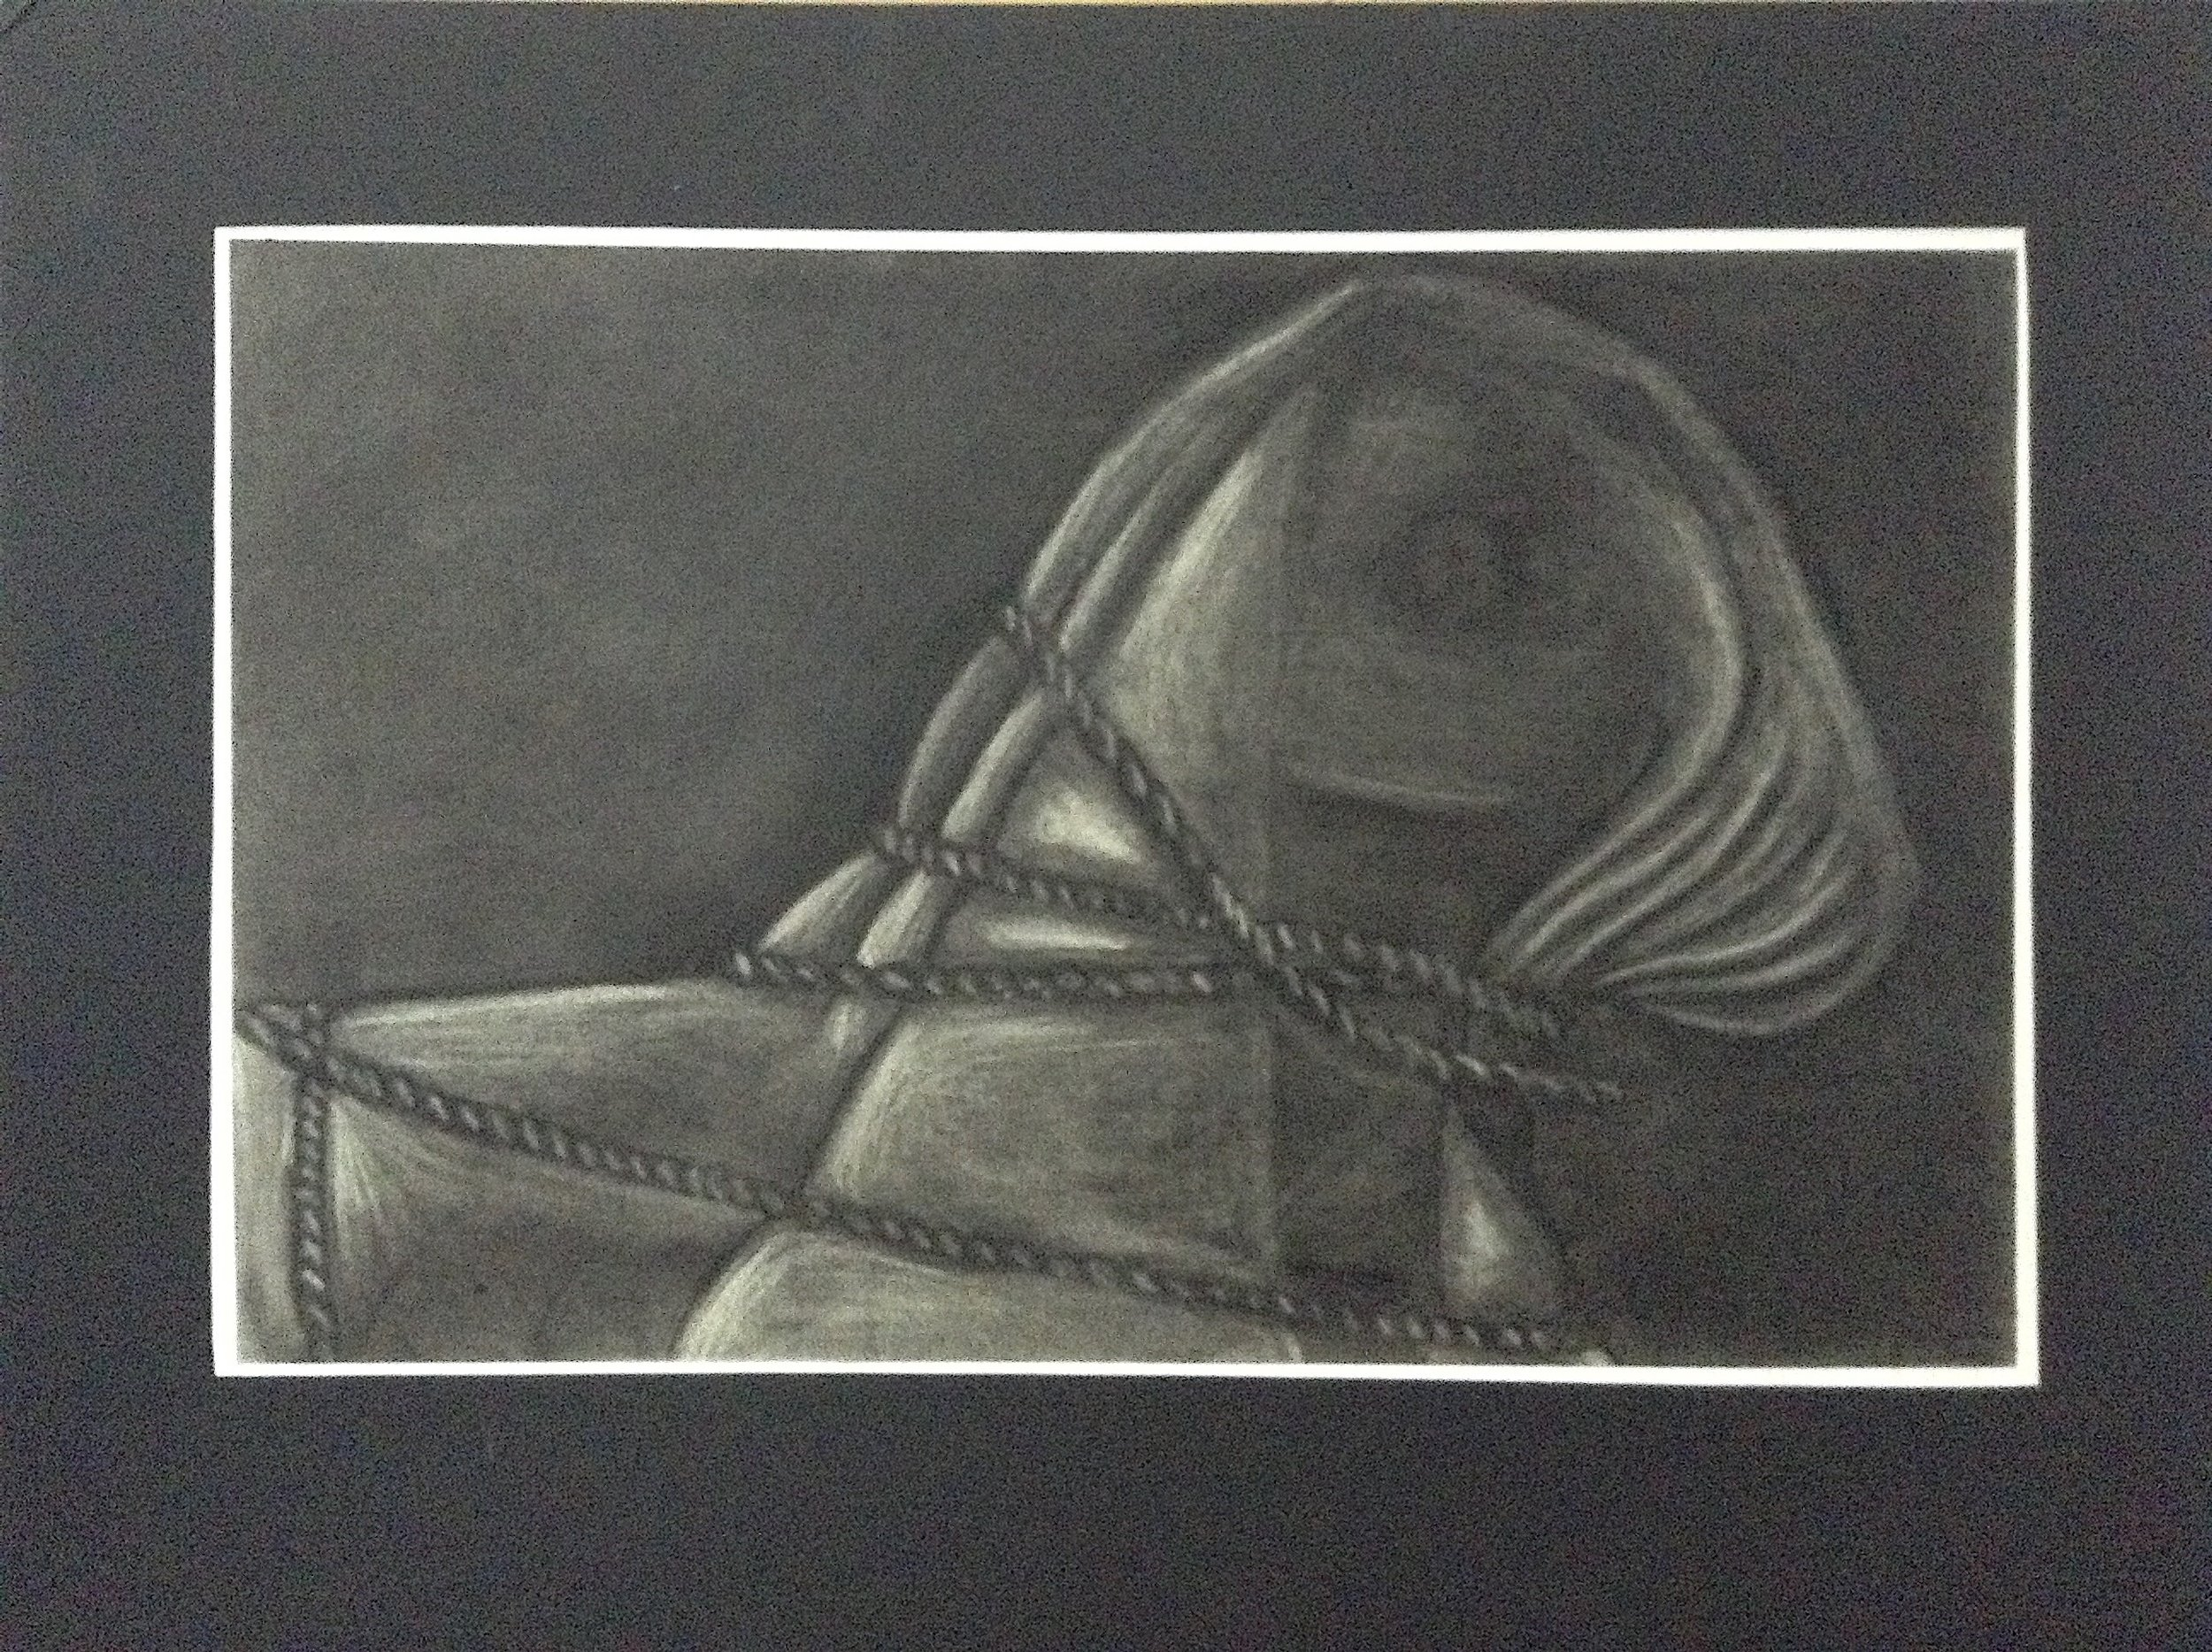 Charcoal, 24 in x 18 in